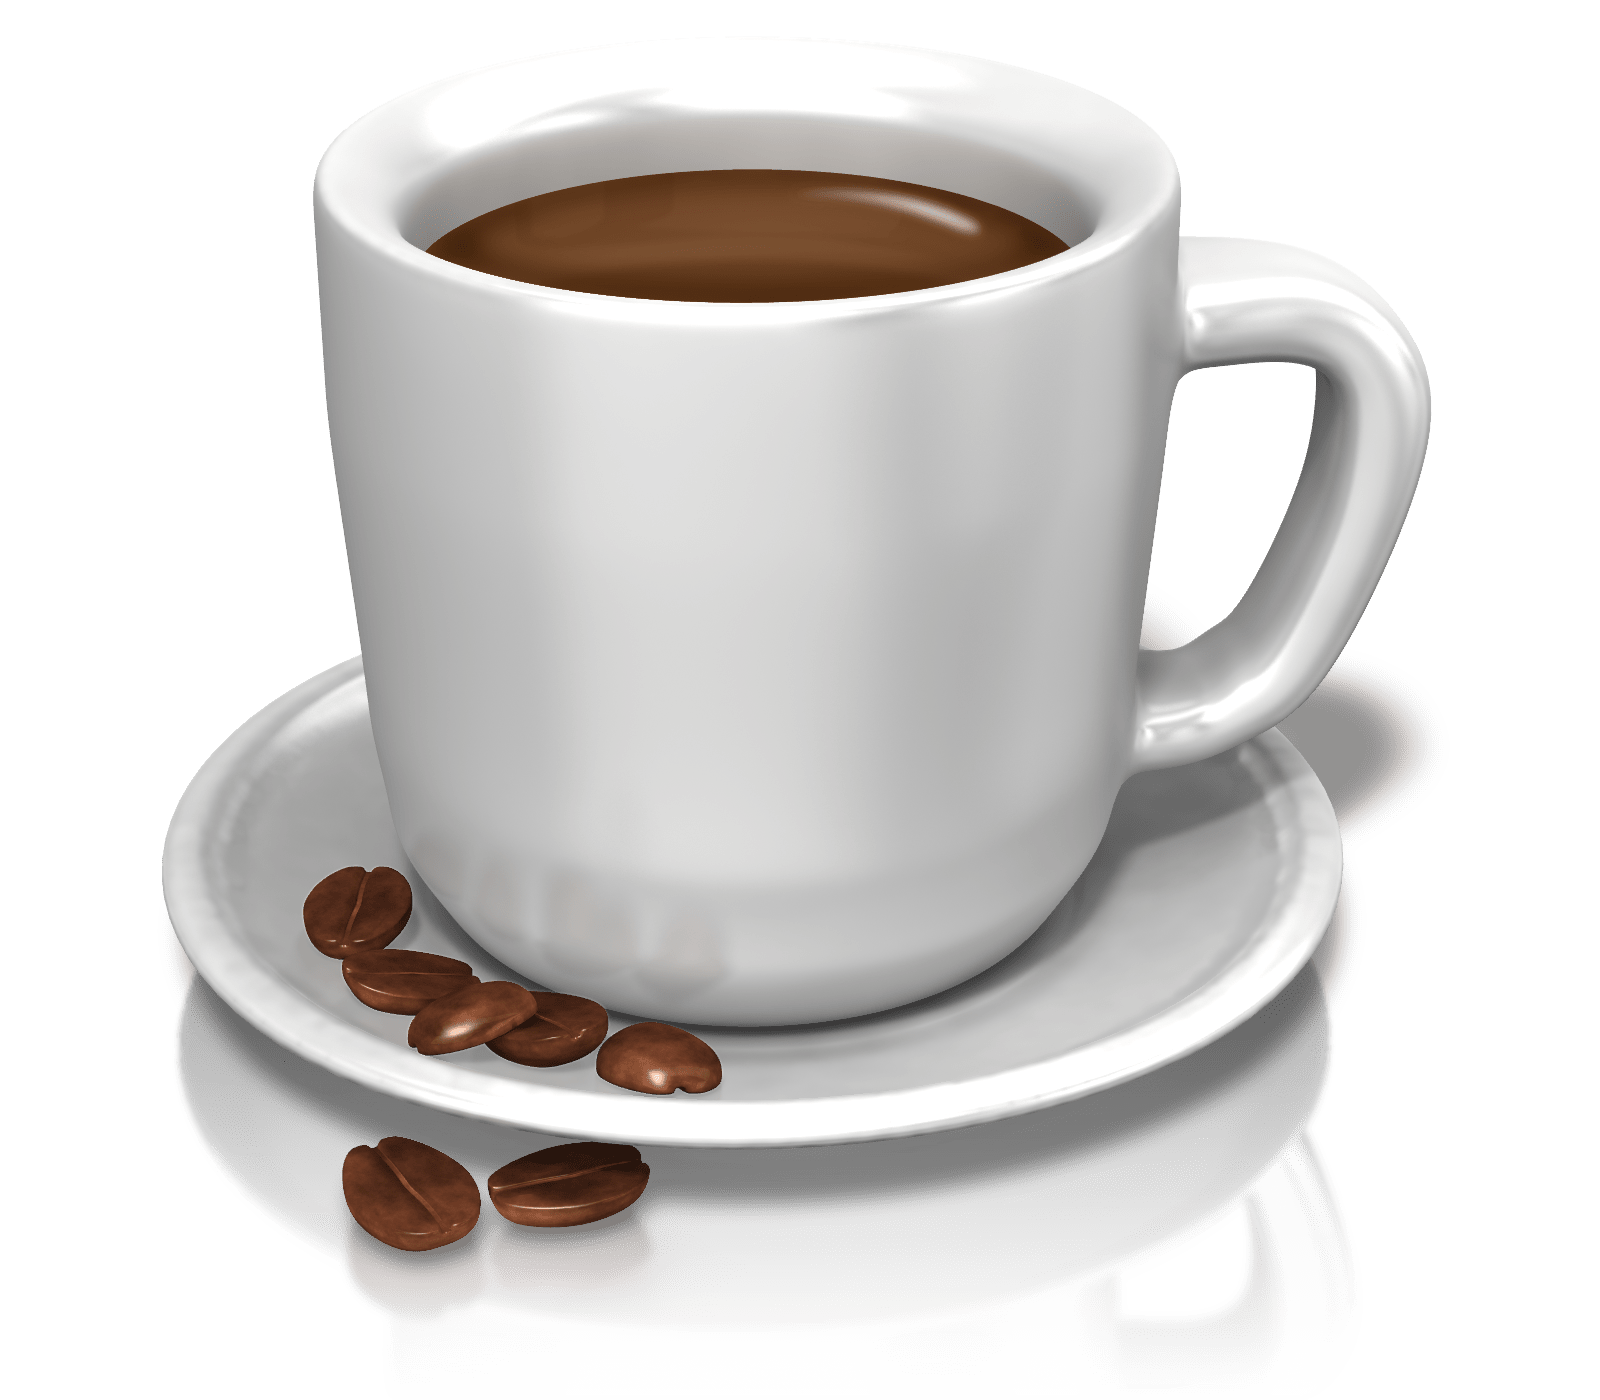 Mug That Says Coffee Cup Mug Coffee Png Images Free Download